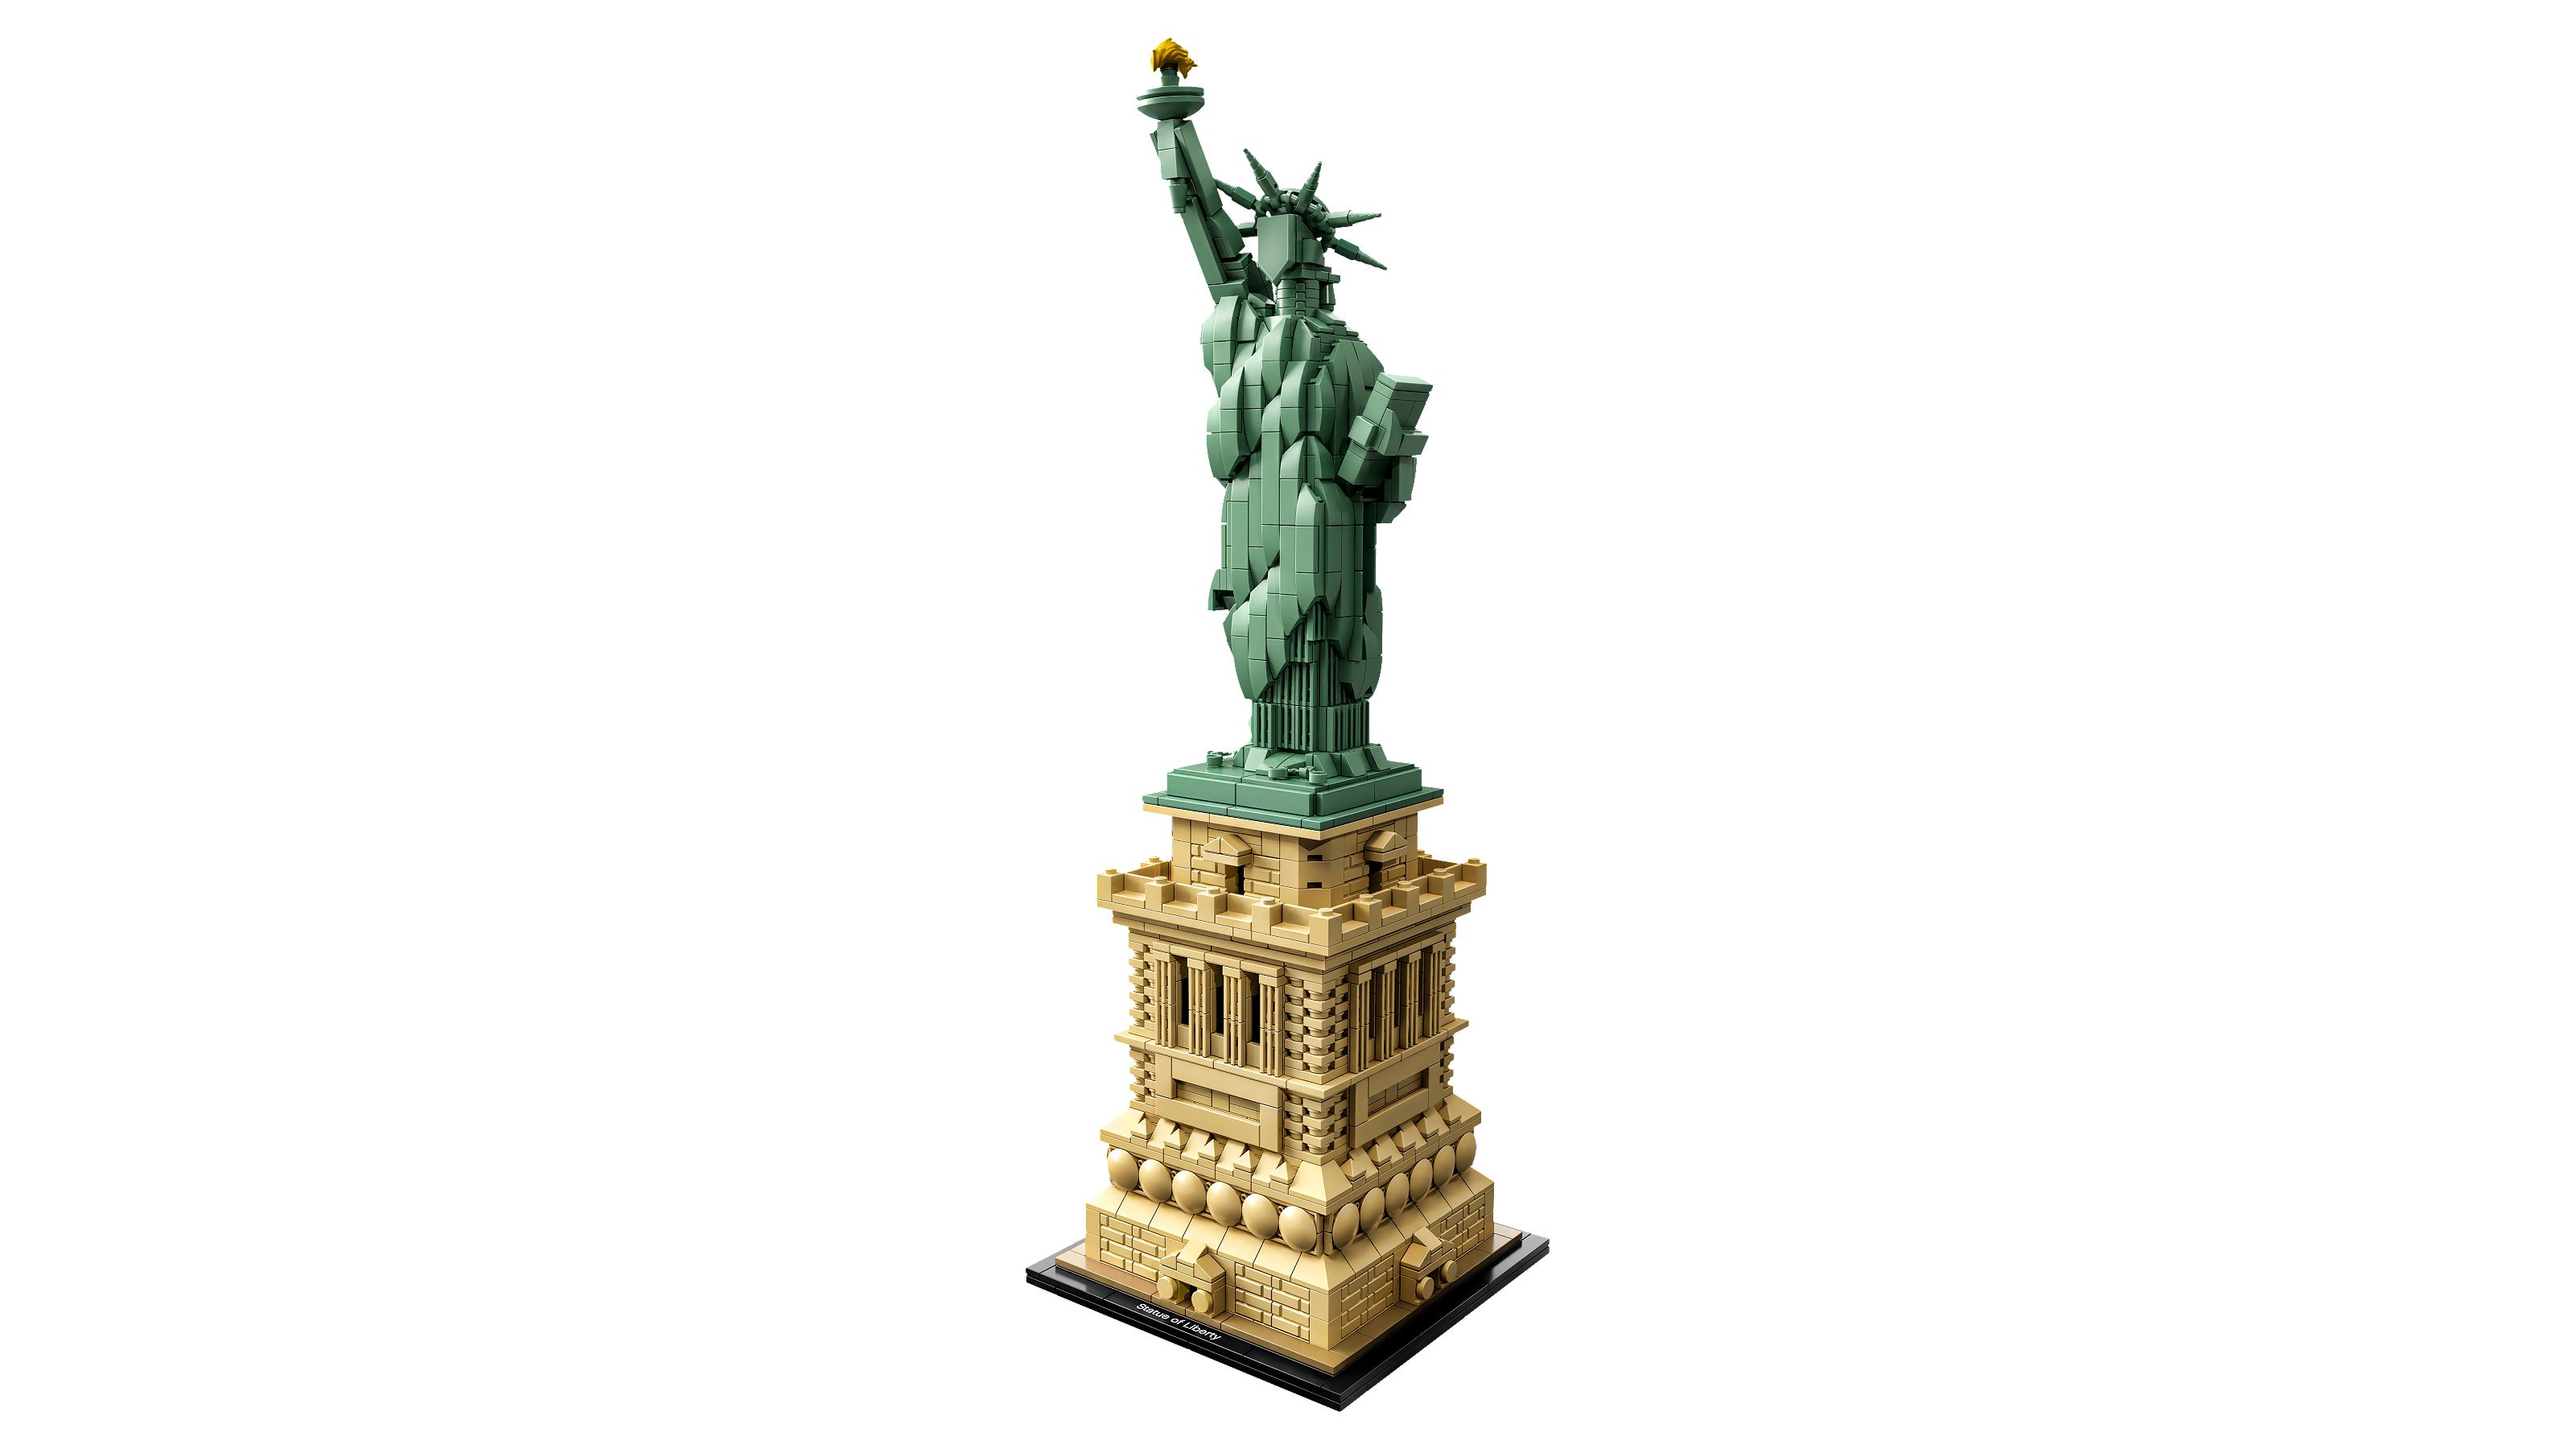 Best Lego Architecture sets: Statue of Liberty